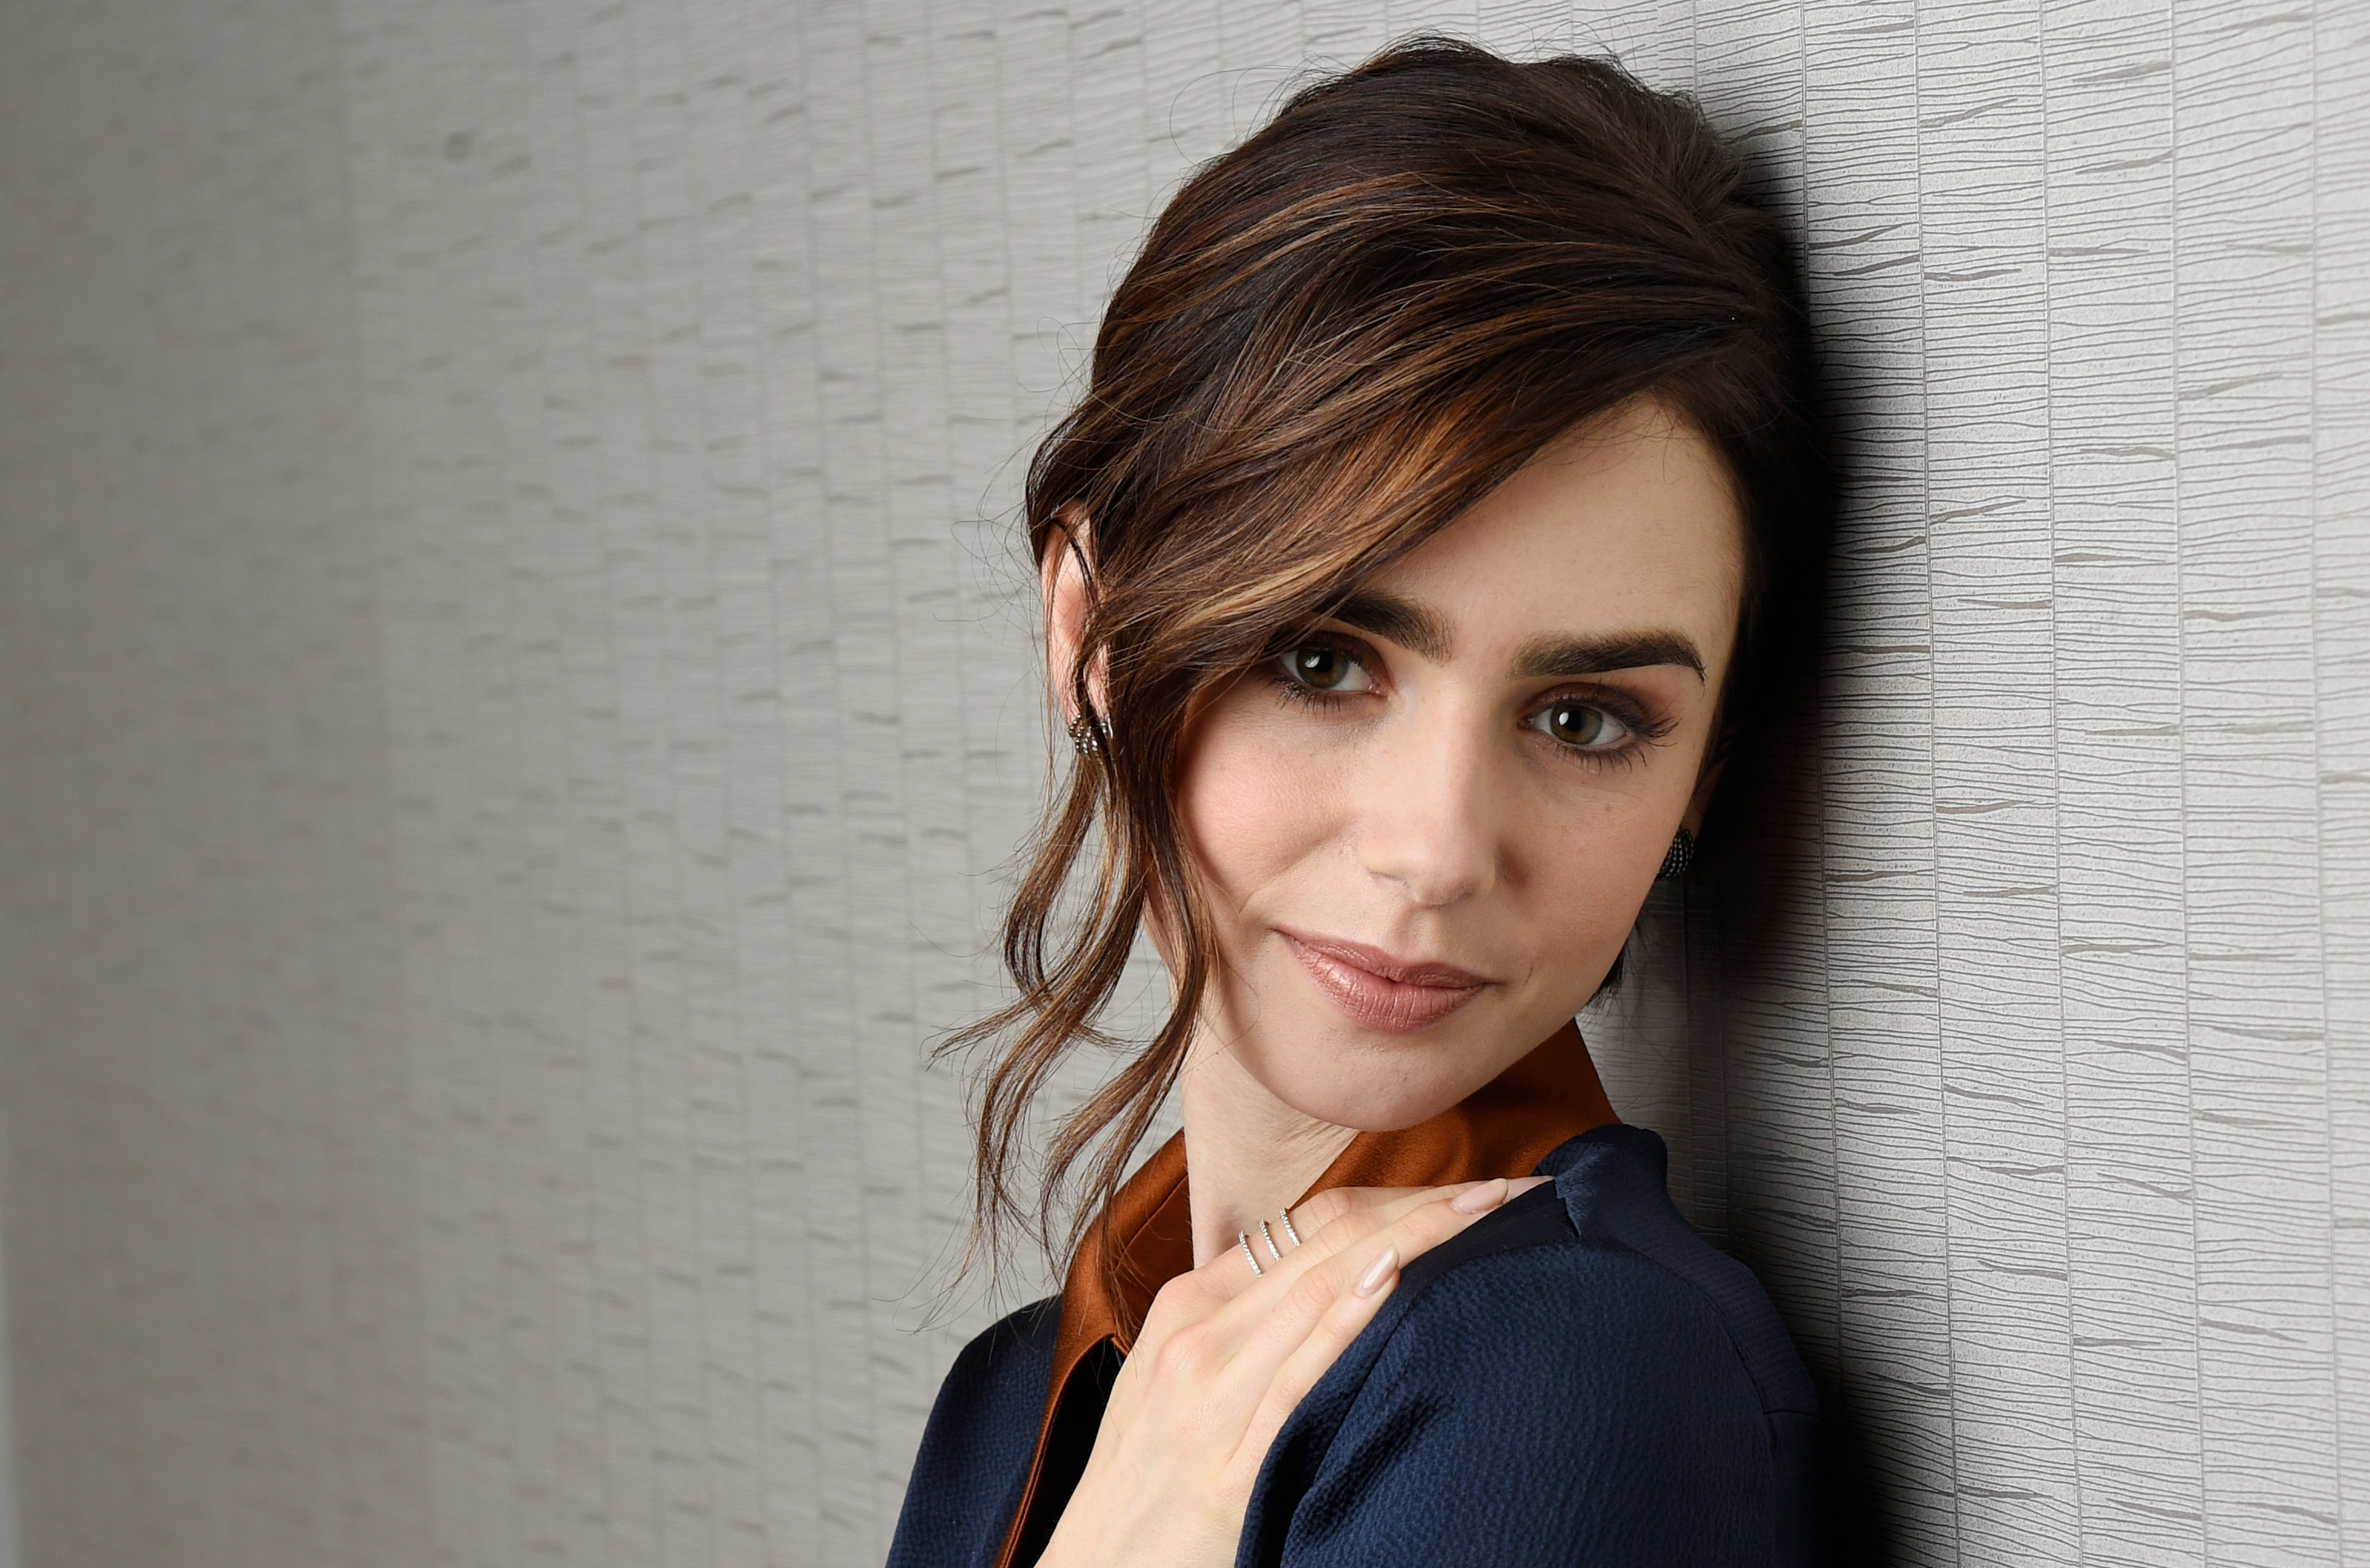 Lily collins cute 2017 4k hd celebrities 4k wallpapers images backgrounds photos and pictures - Celebrity background ...